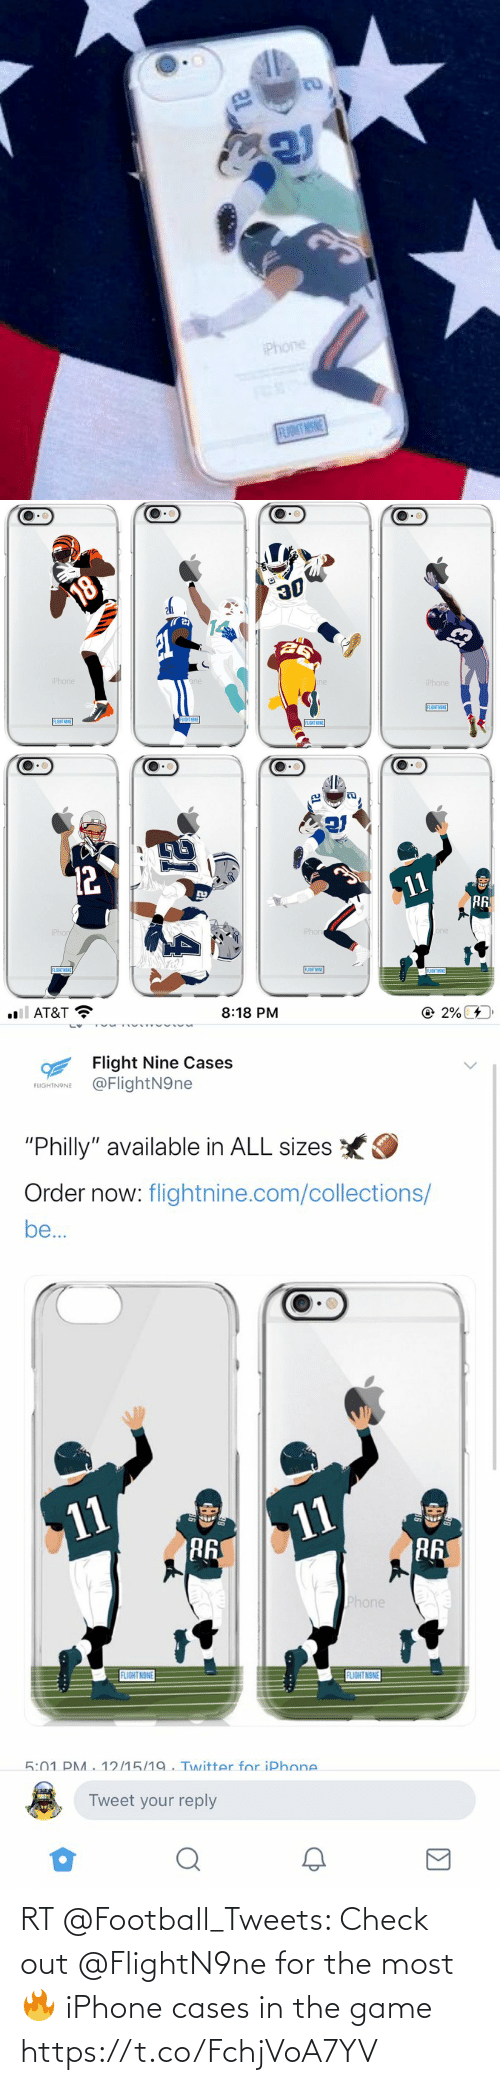 """iphon: Phone  FLUNTNSNE  21   18  30  iPhone  one  one  iPhone  FLIGHT N9NE  FLIGHTN9NE  FLIGHT N9NE  FLIGHT N9NE  12  11  R6  iPhor  iPhon  one  FLIGHT N9NE  FLIGHT N9NE  FLIGHT N9NE   ll AT&T ?  8:18 PM  © 2% 4  Flight Nine Cases  @FlightN9ne  FLIGHTNONE  """"Philly"""" available in ALL sizes  Order now: flightnine.com/collections/  be..  11  11  R6  R6  Phone  FLIGHT N9NE  FLIGHT N9NE  5:01 PM . 12/15/19 . Twitter for iPhone  Tweet your reply RT @FootbaIl_Tweets: Check out @FlightN9ne for the most 🔥 iPhone cases in the game https://t.co/FchjVoA7YV"""